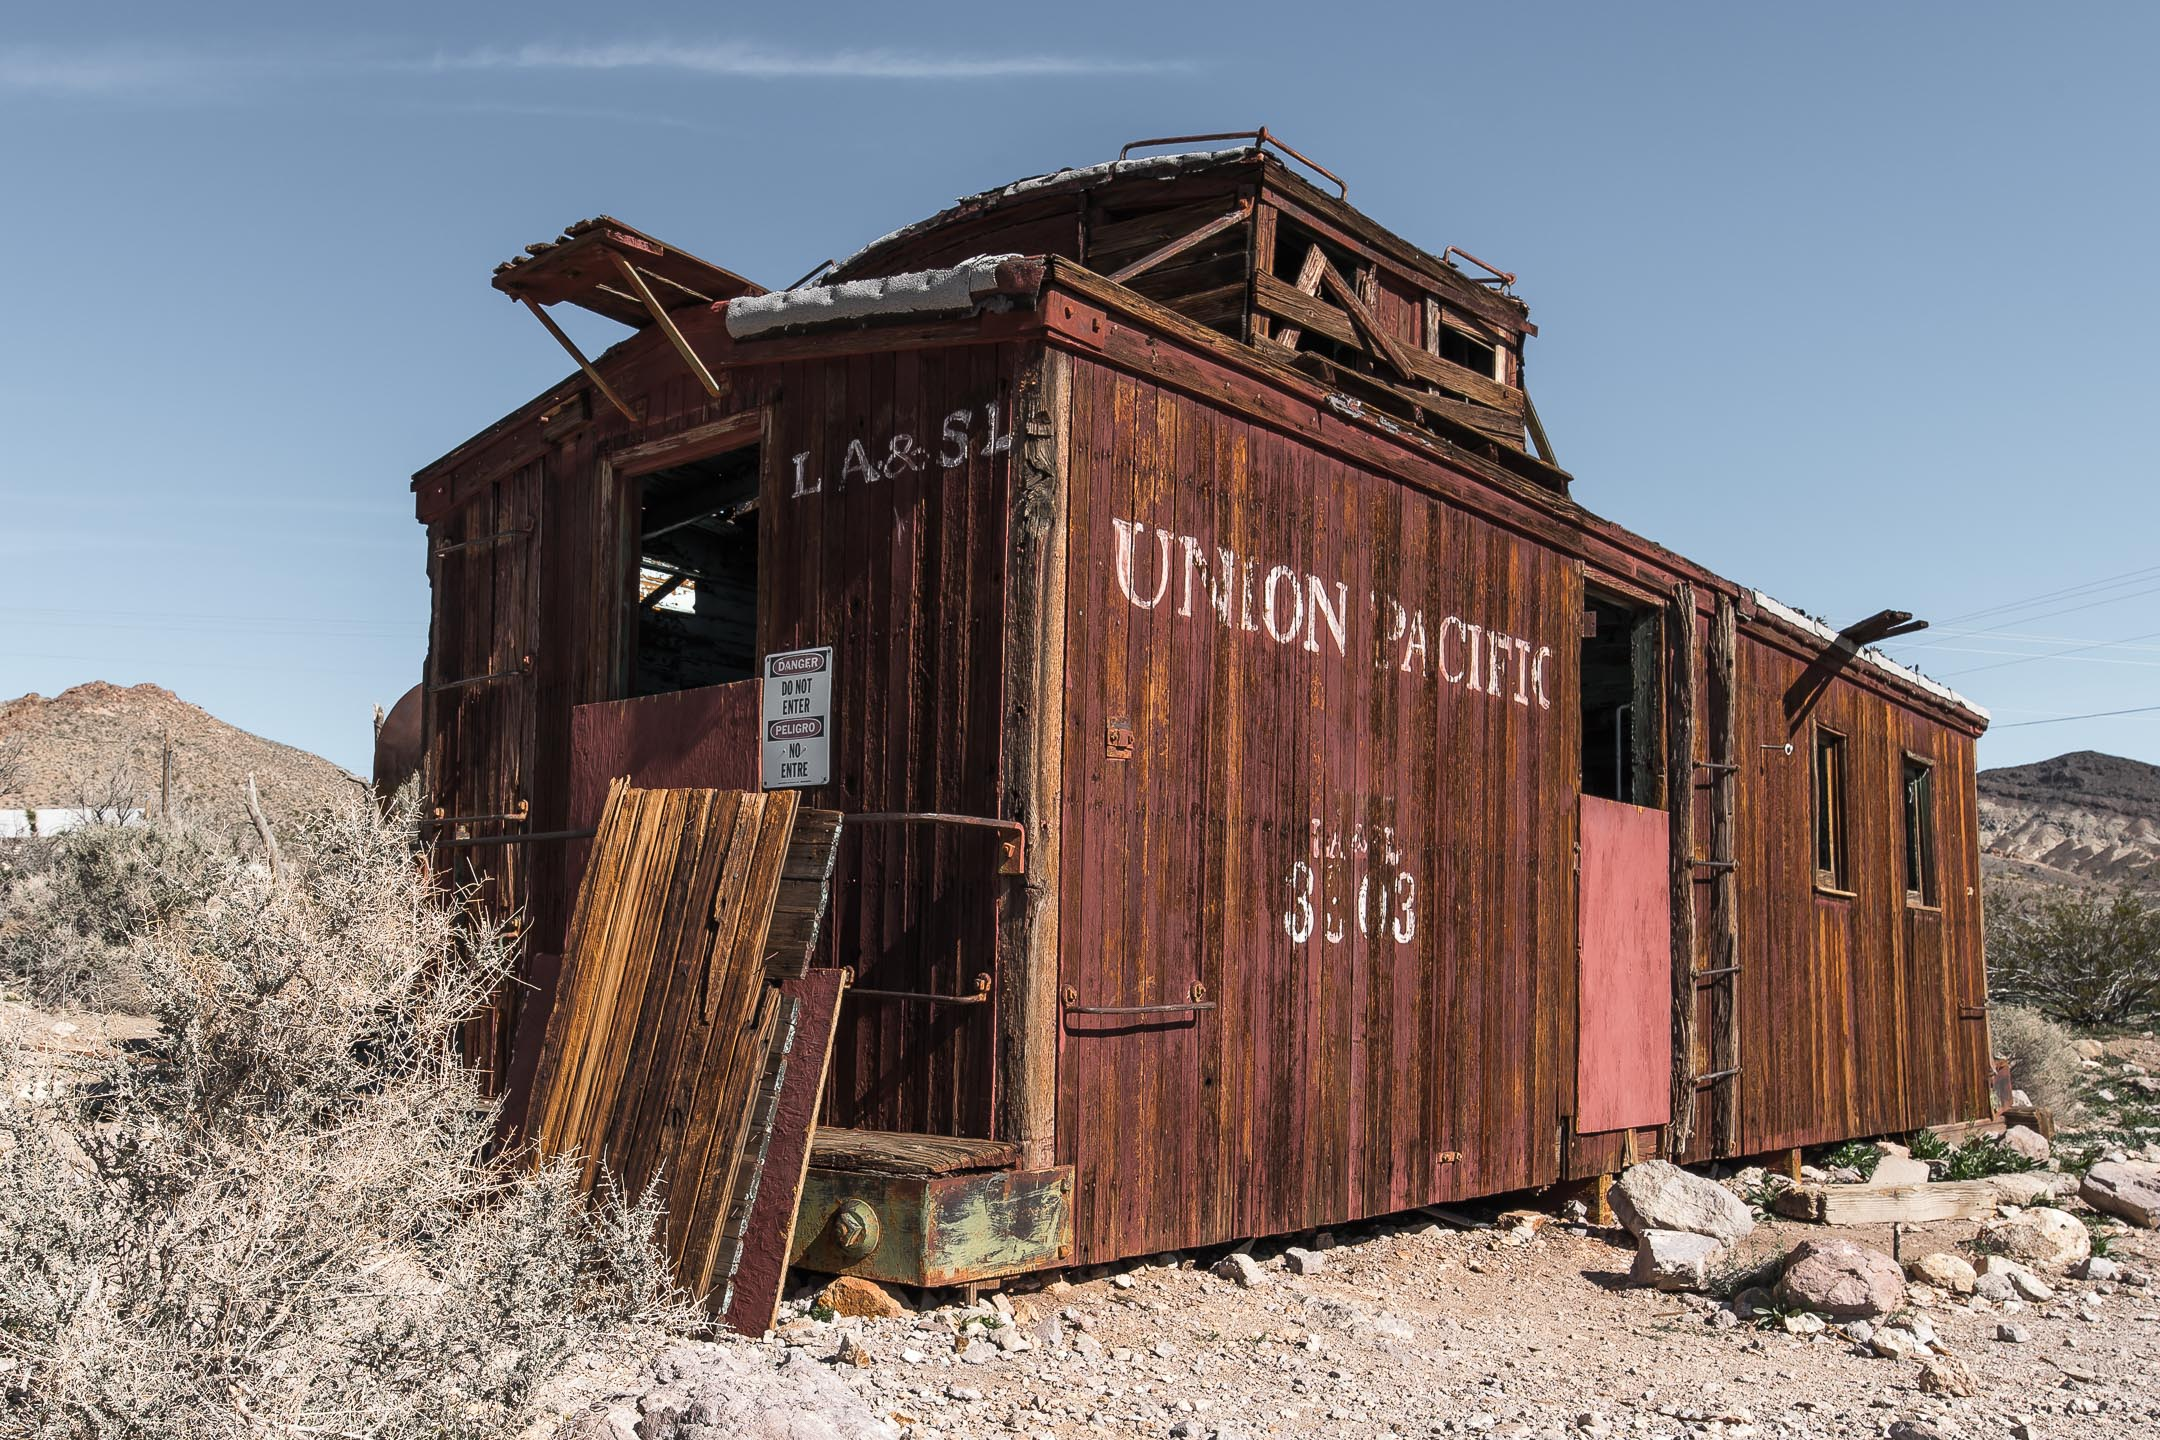 Old Union Pacific Caboose